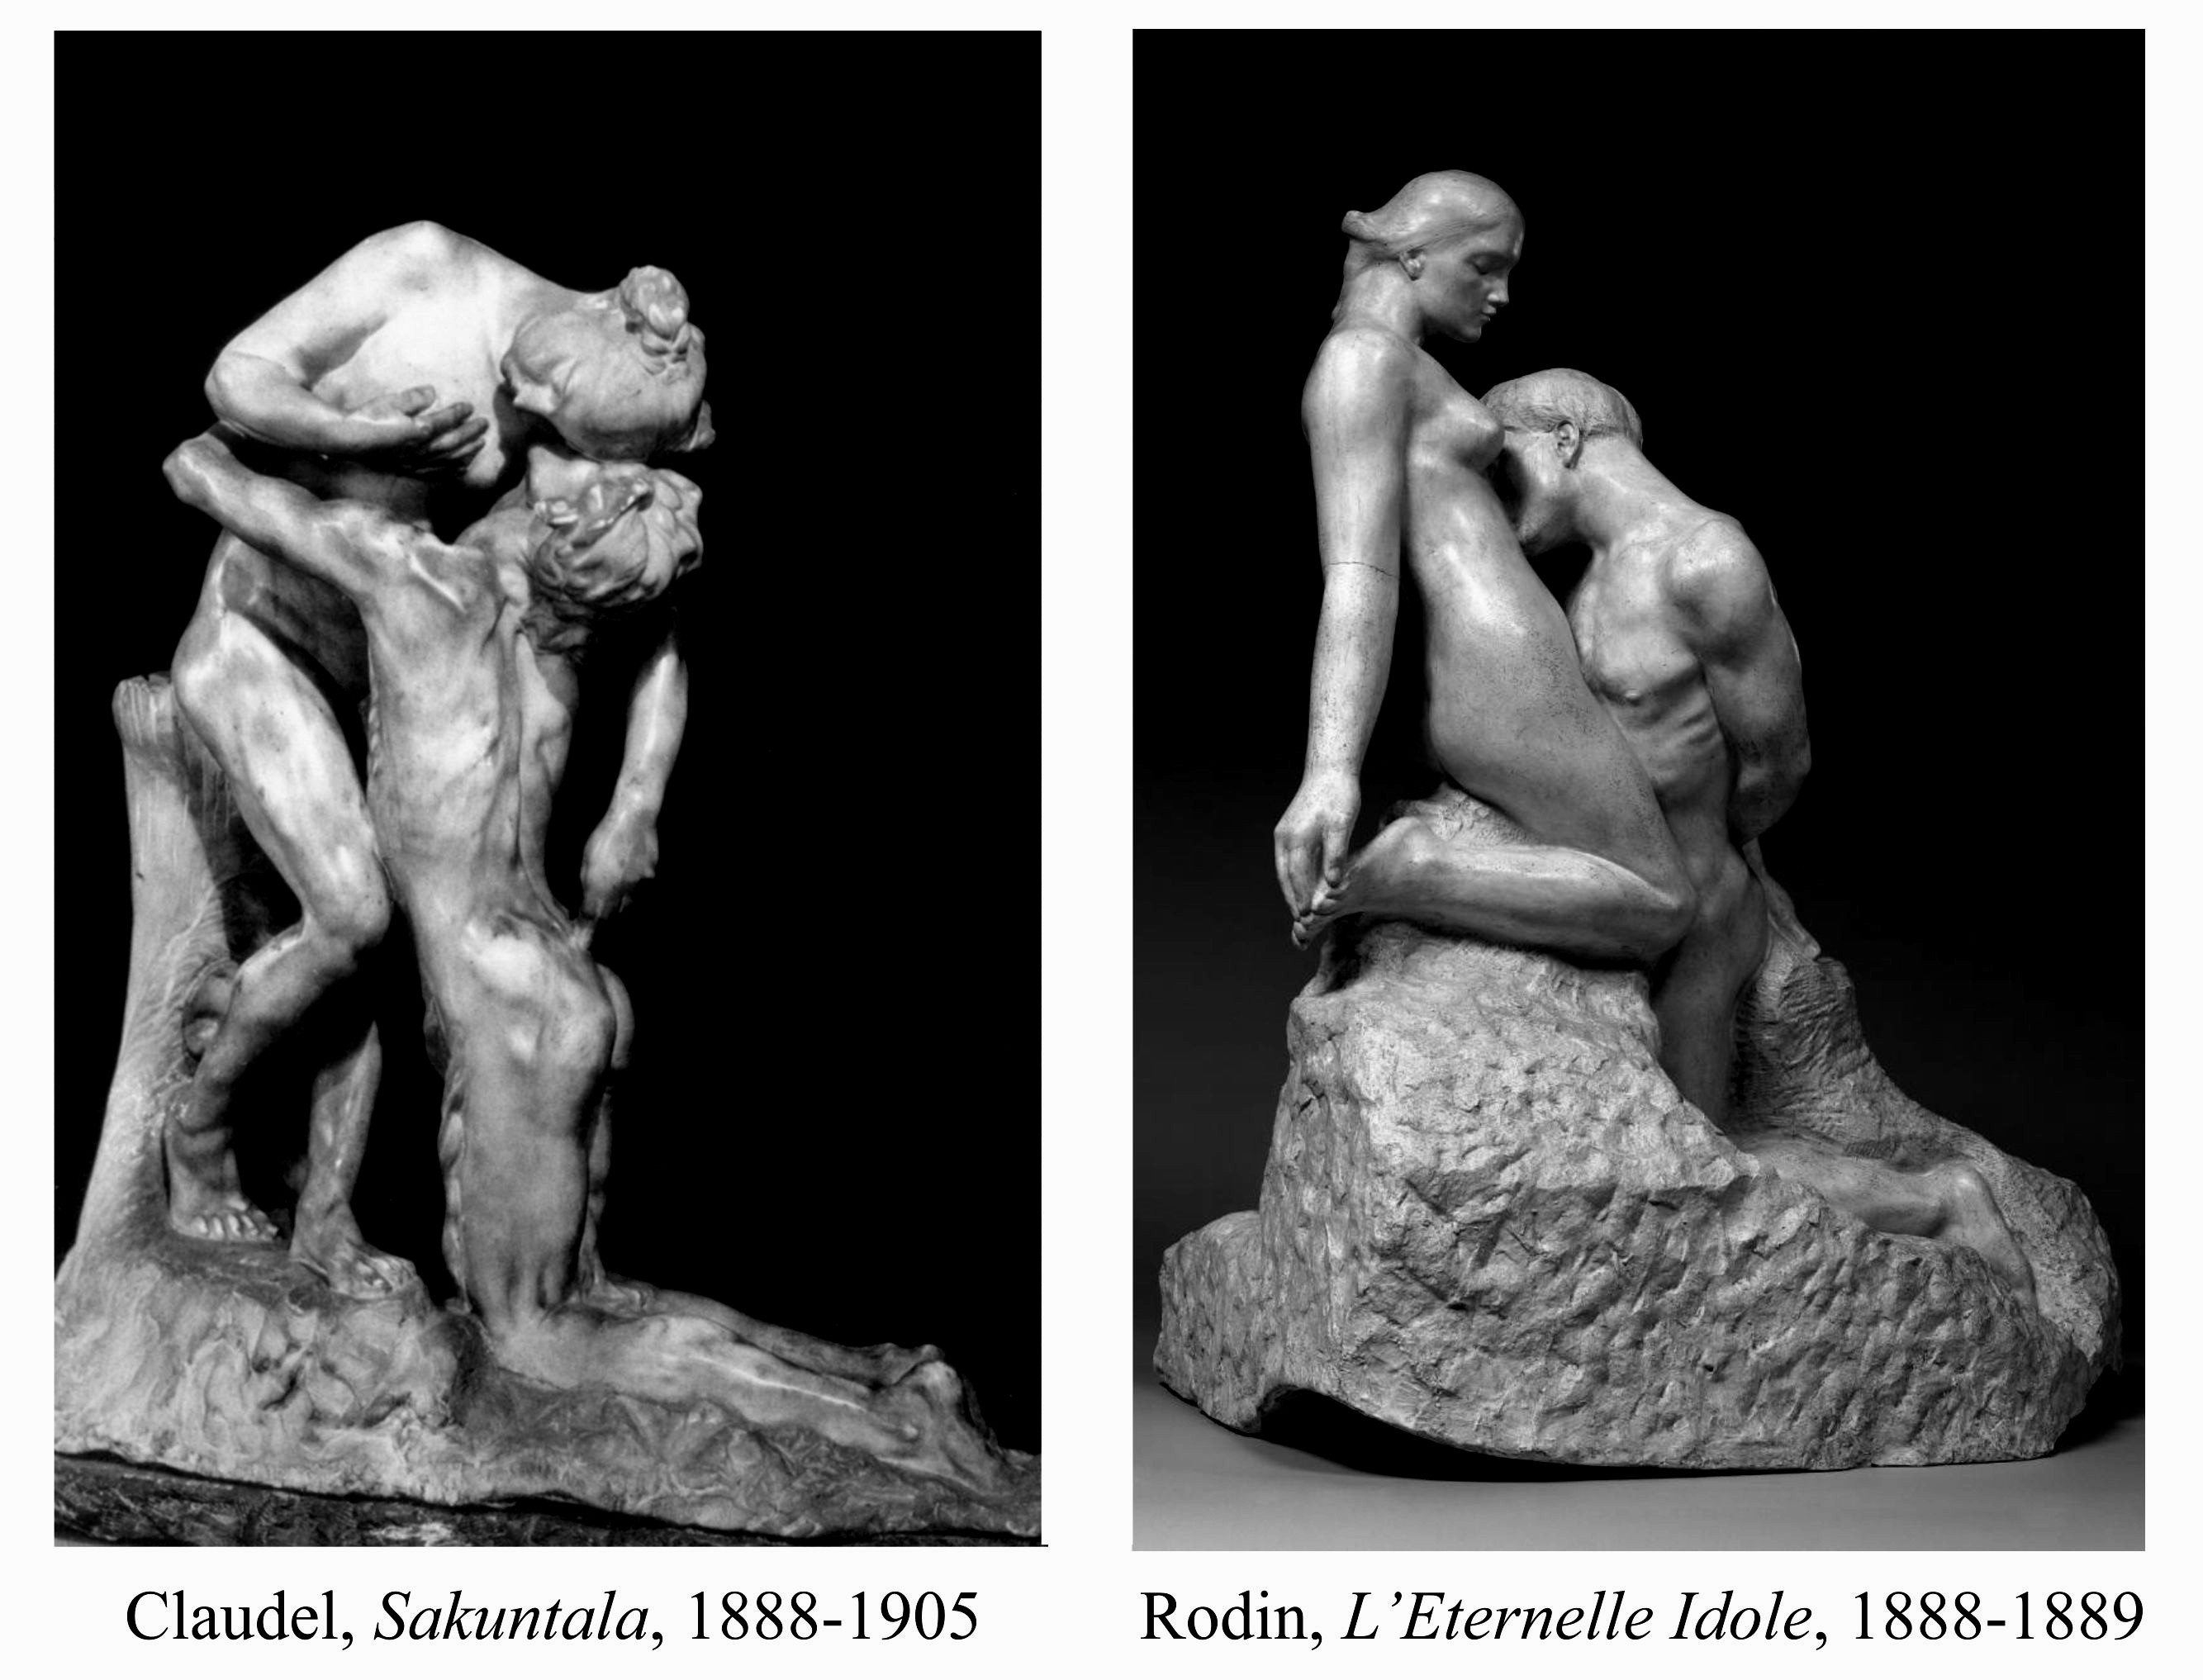 Details about ETERNAL IDOL by RODIN LOVERS STATUE BONDED